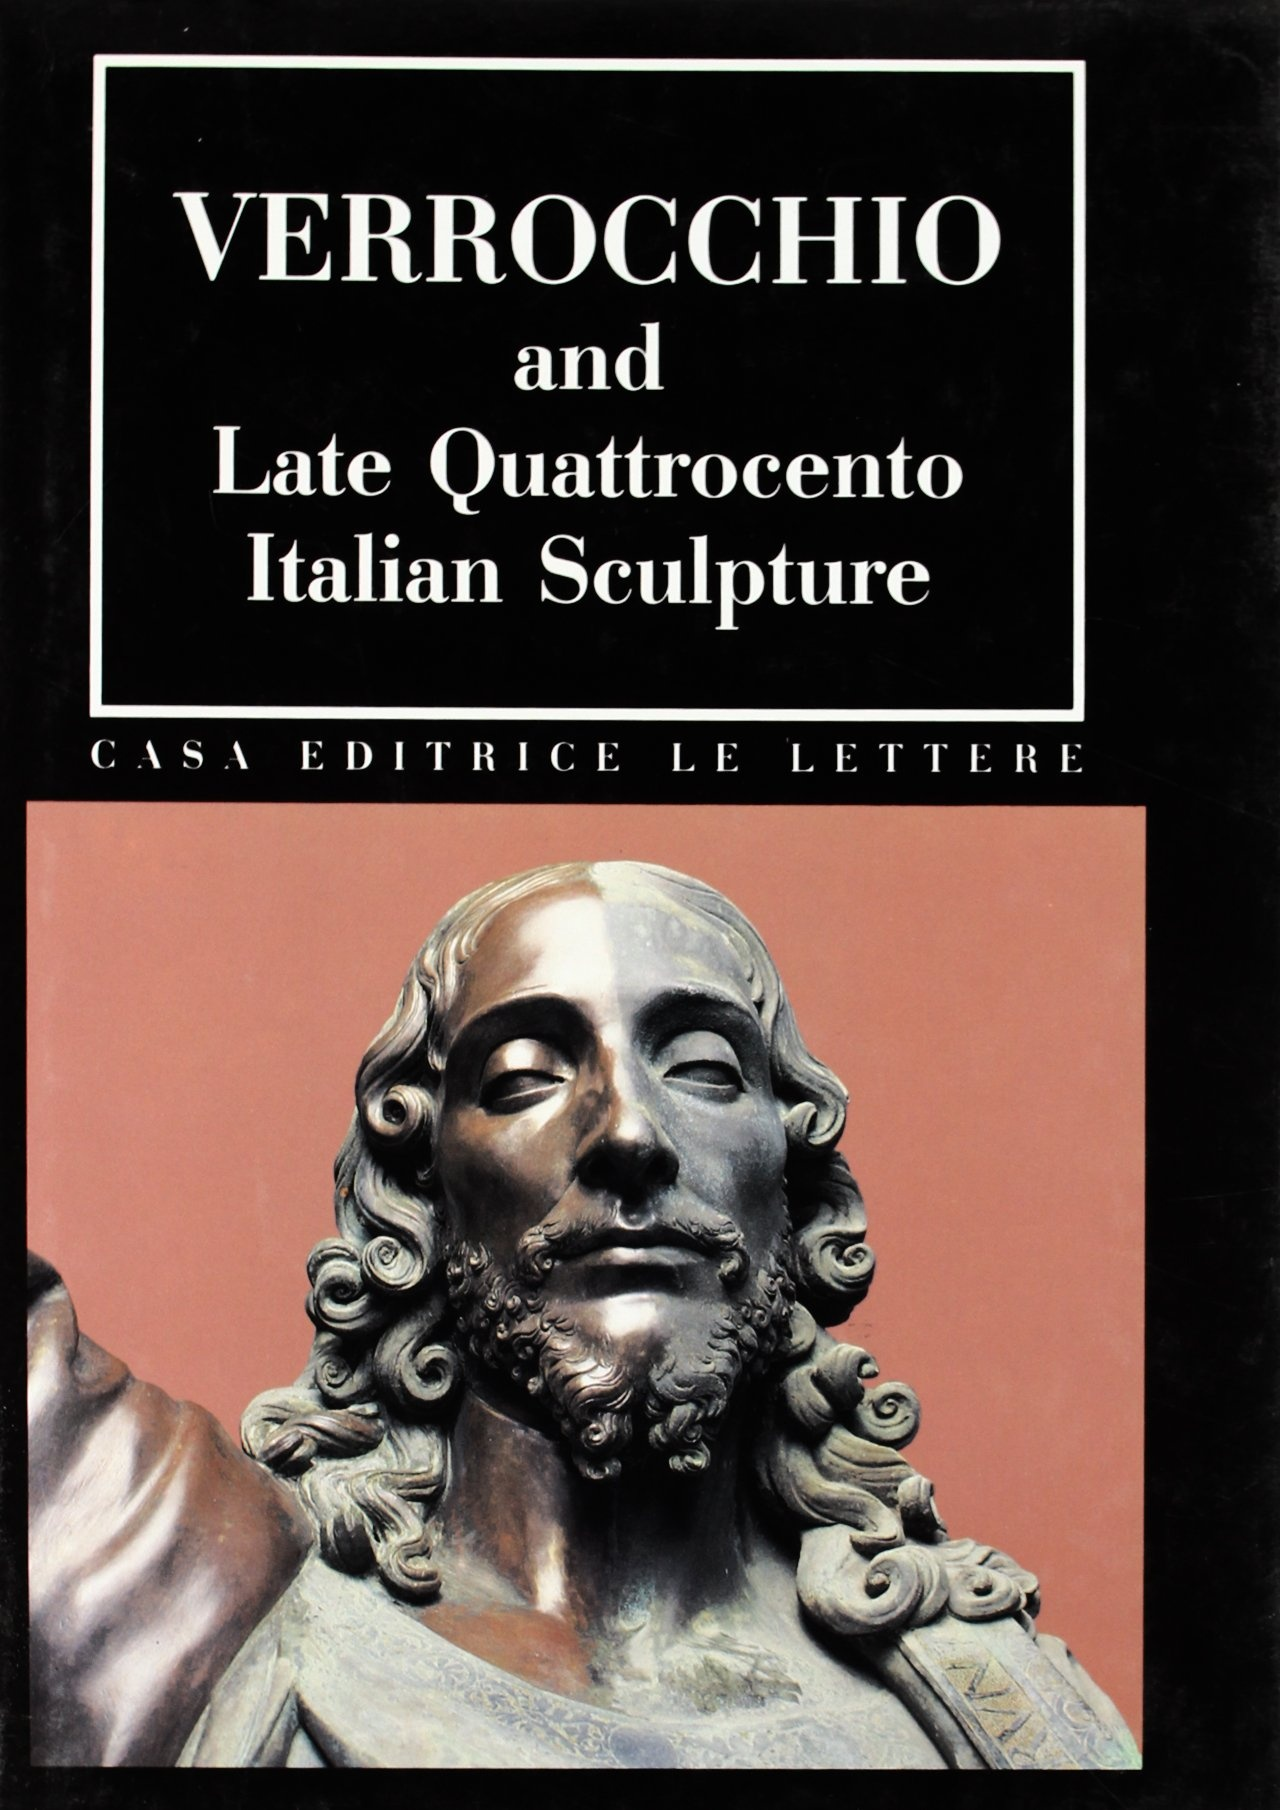 Verrocchio and Late Quattrocento Italian Sculpture